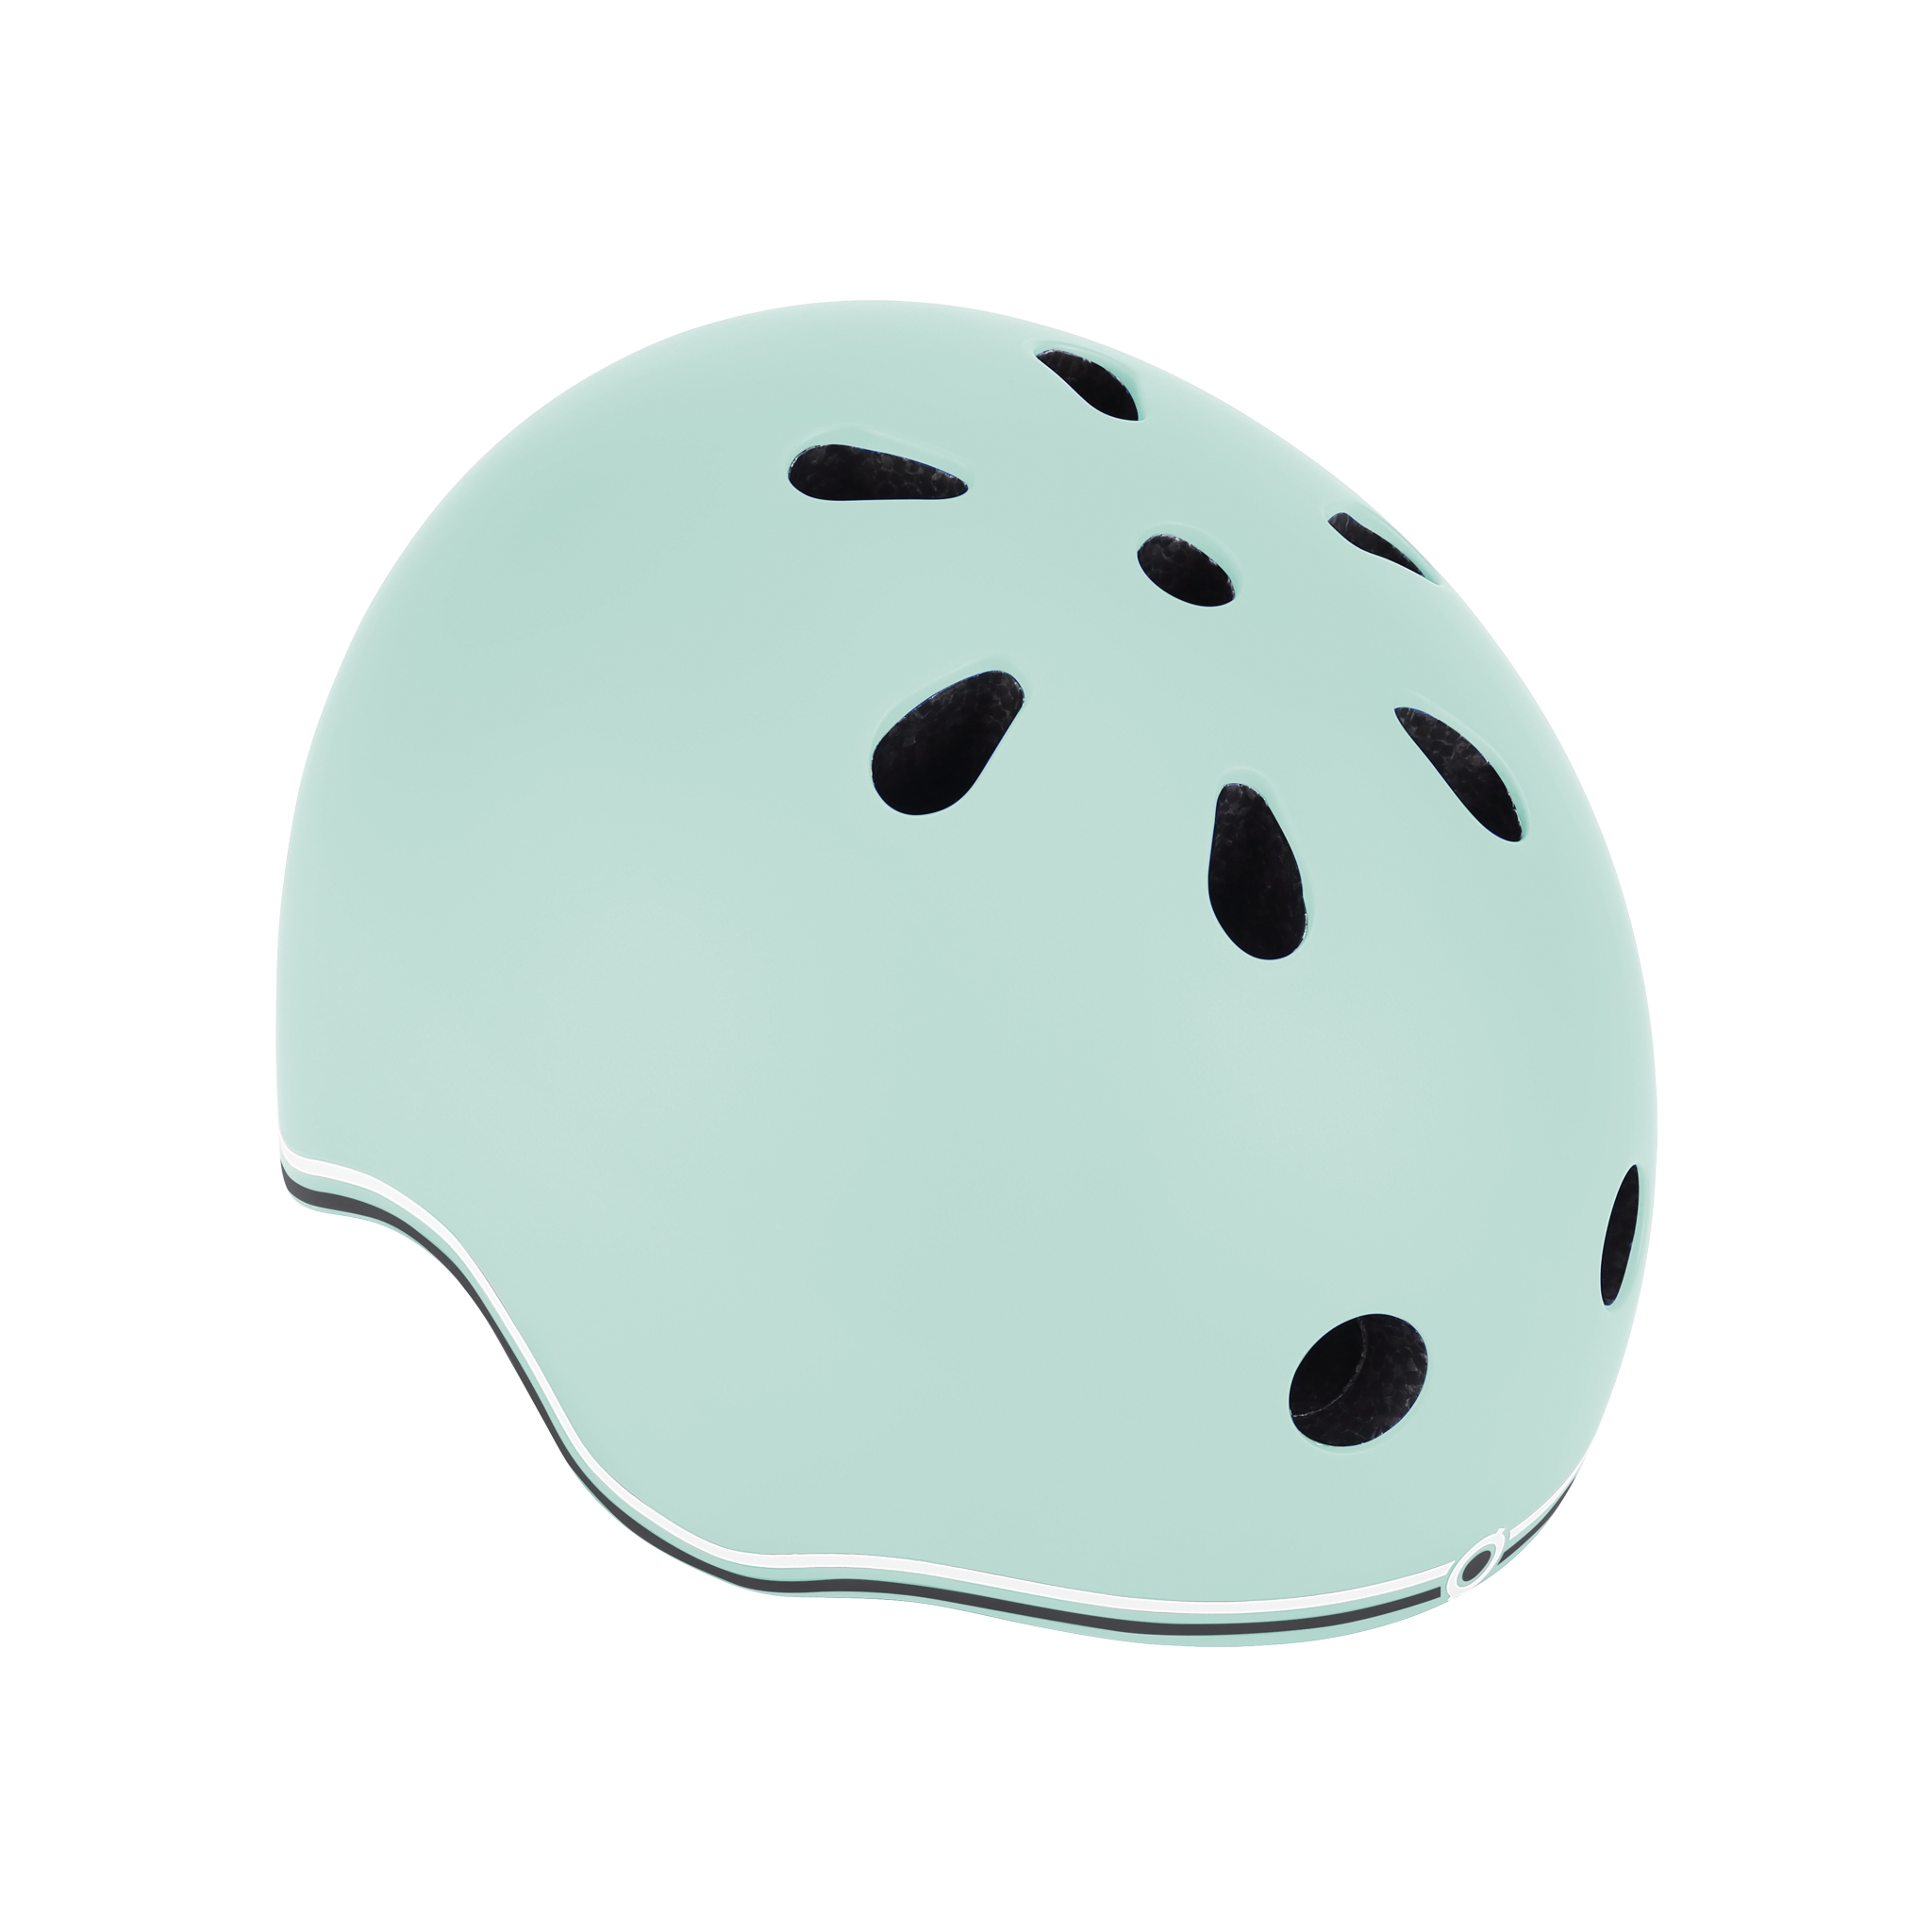 GO-UP-helmets-scooter-helmets-for-toddlers-in-mold-polycarbonate-outer-shell-pastel-green 0